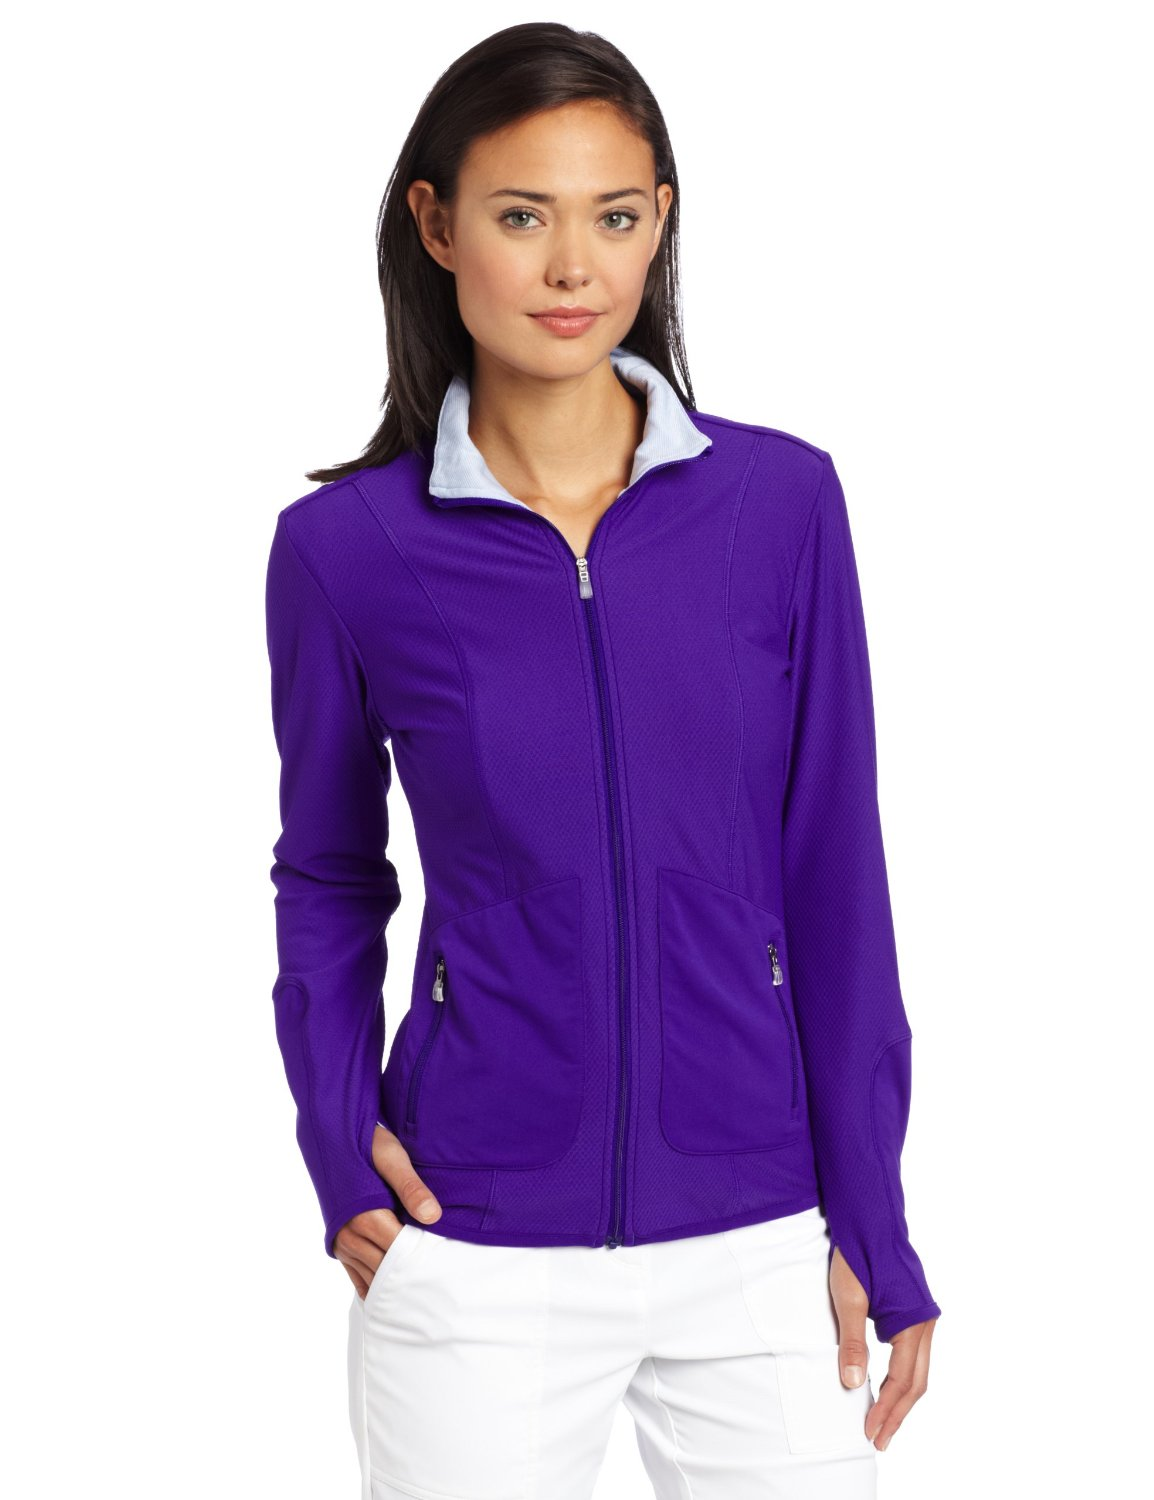 Womens Adidas Climalite Textured Knit Golf Jackets